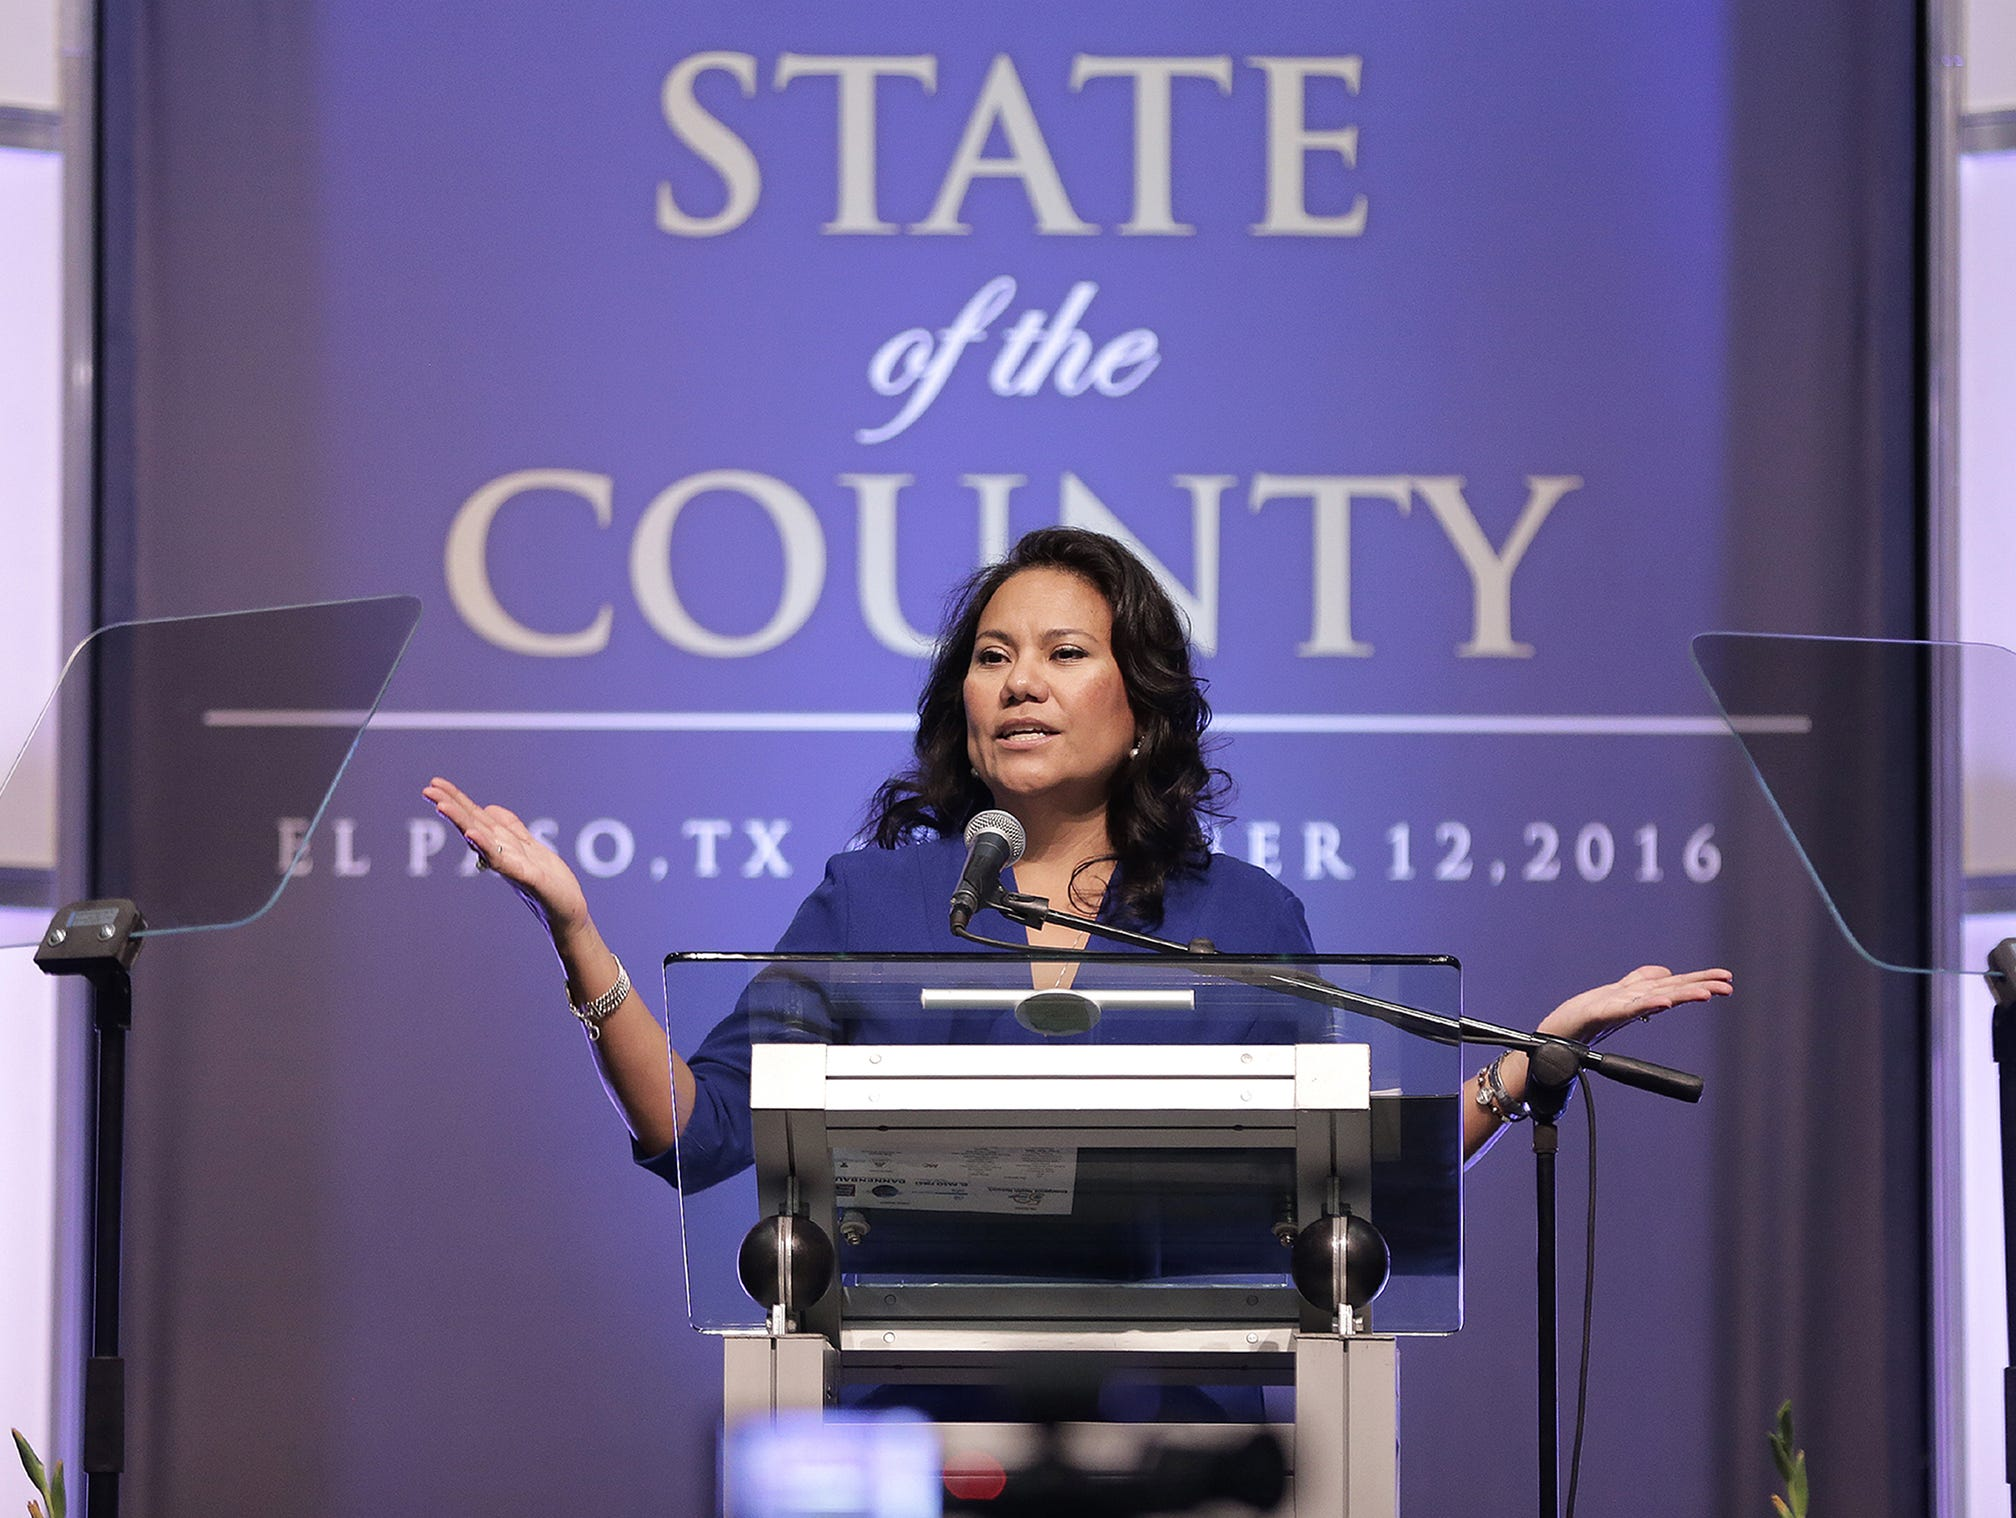 El Paso County Judge Veronica Escobar delivers the State of the County Address Wednesday at the Judson F. Williams Convention Center where she outlined the accomplishments of her office and announced the upcoming budget will not have any tax increases.